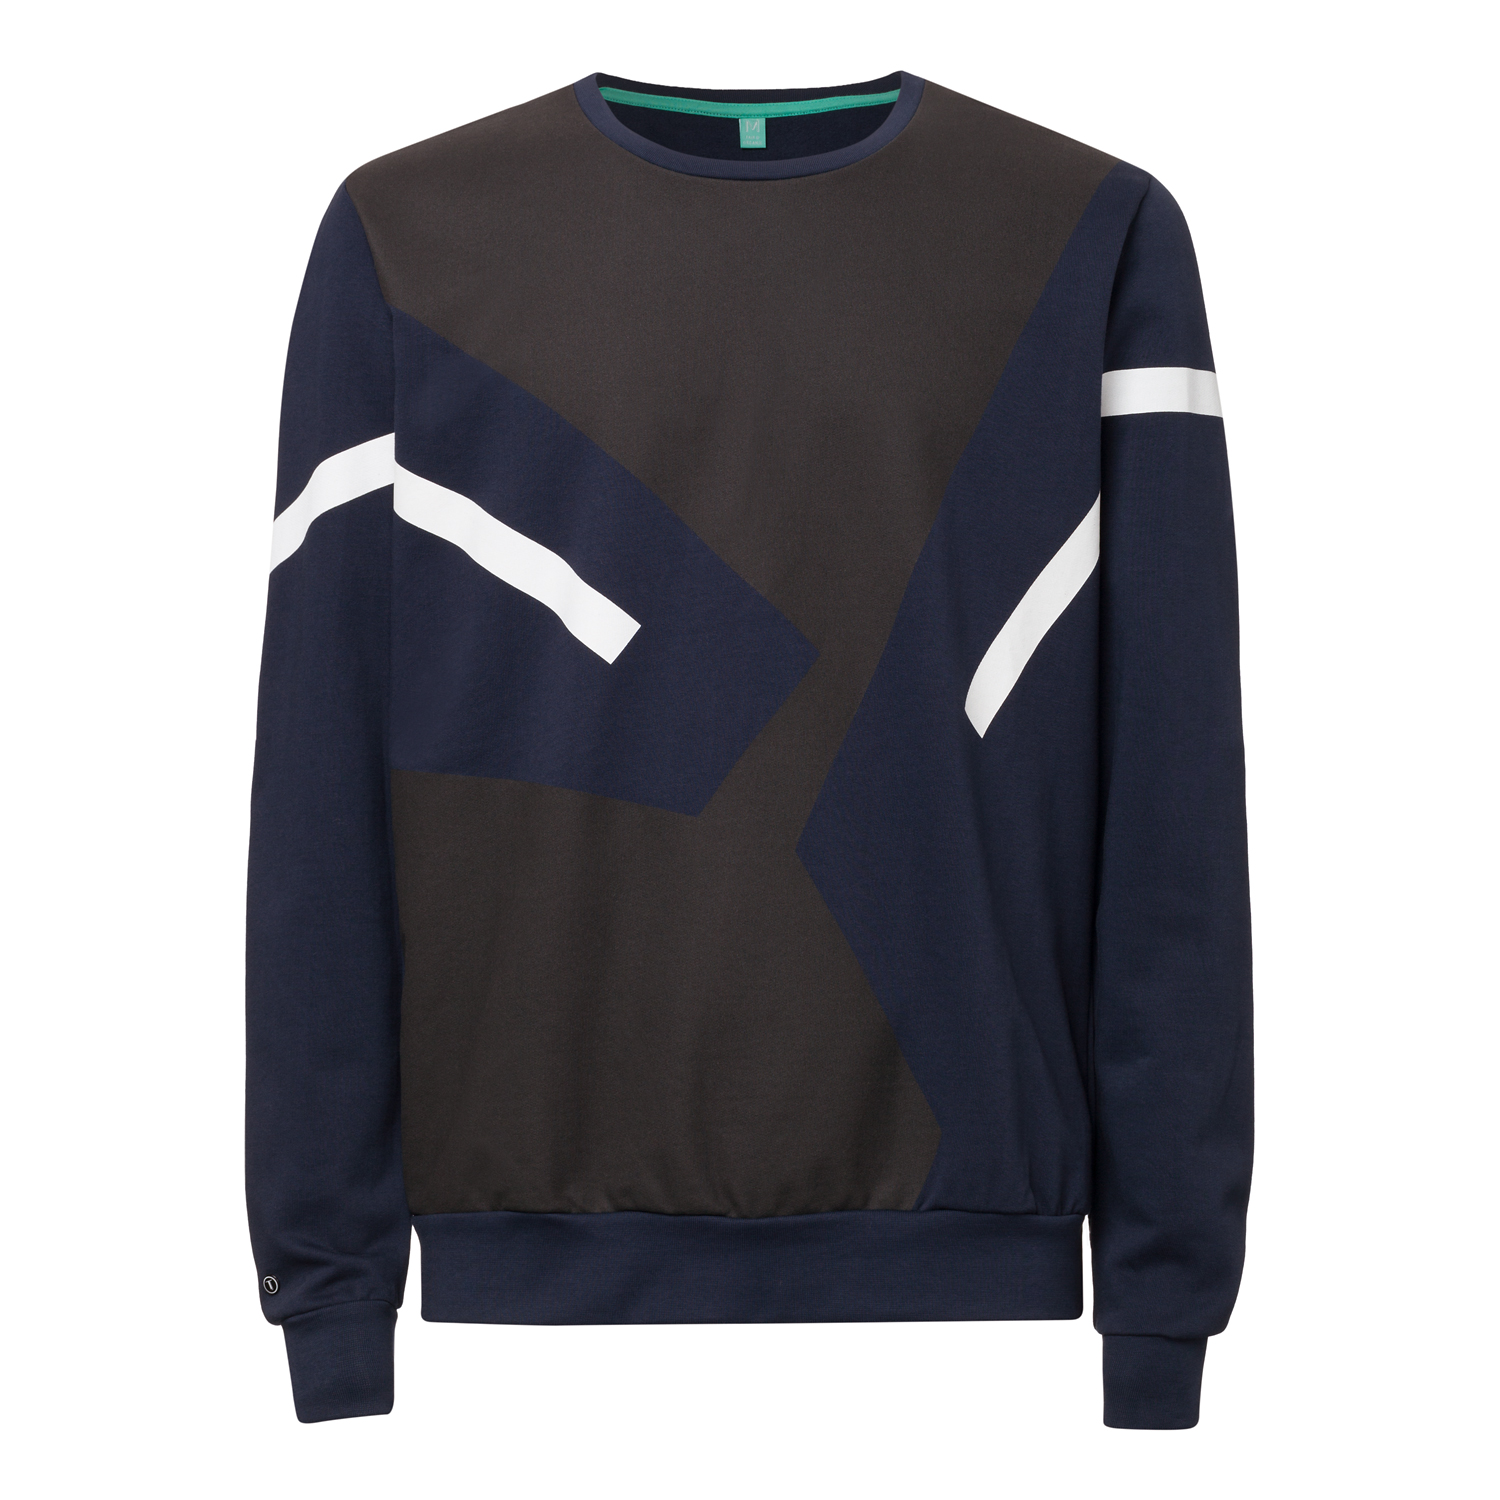 2. Wahl TT29 Pullover Wizard GOTS & Fairtrade